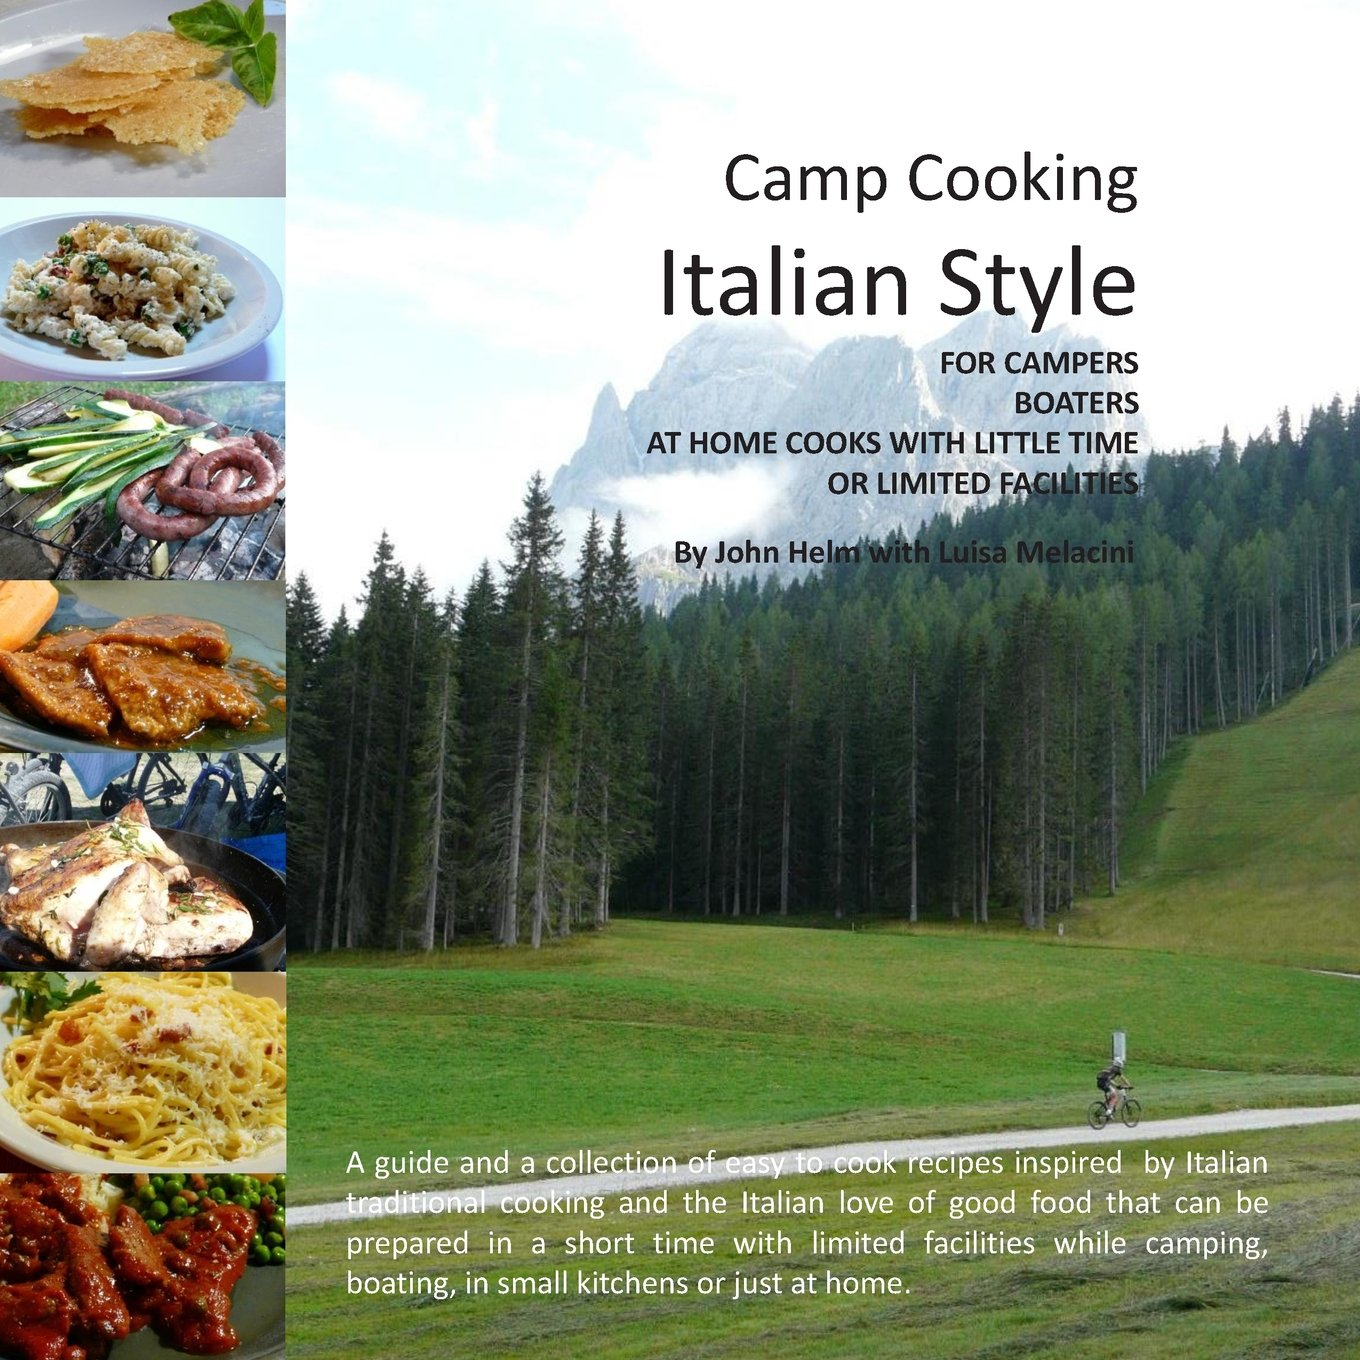 Camp Cooking Italian Style